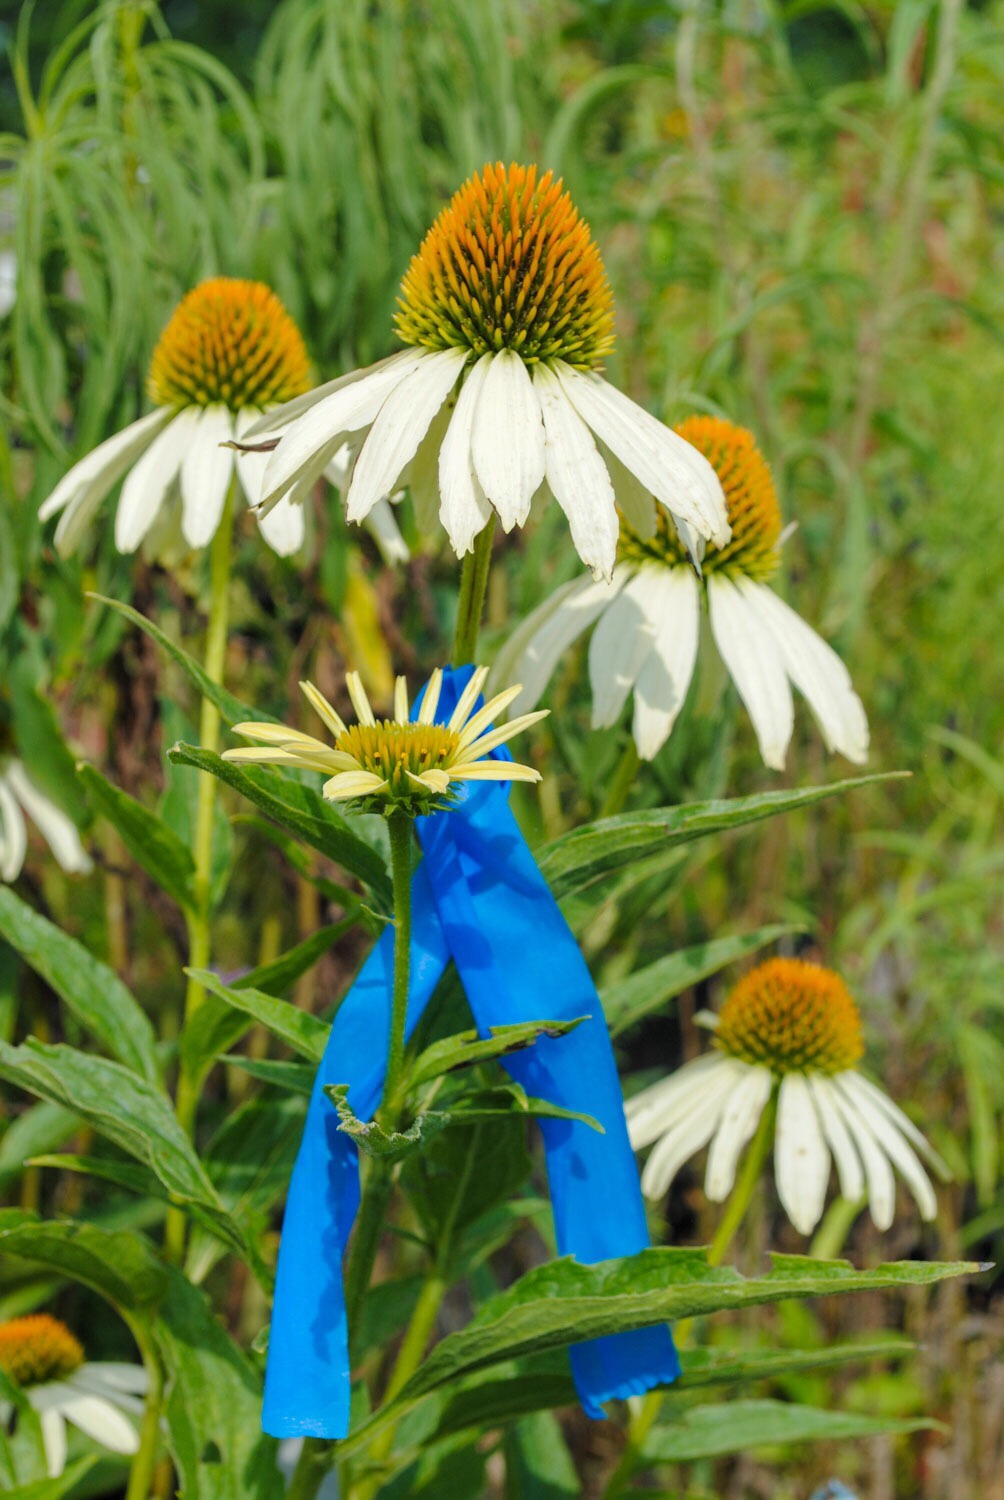 Brent had a clever way of marking the plants where he intended to collect seed. He flagged them with blue tape.